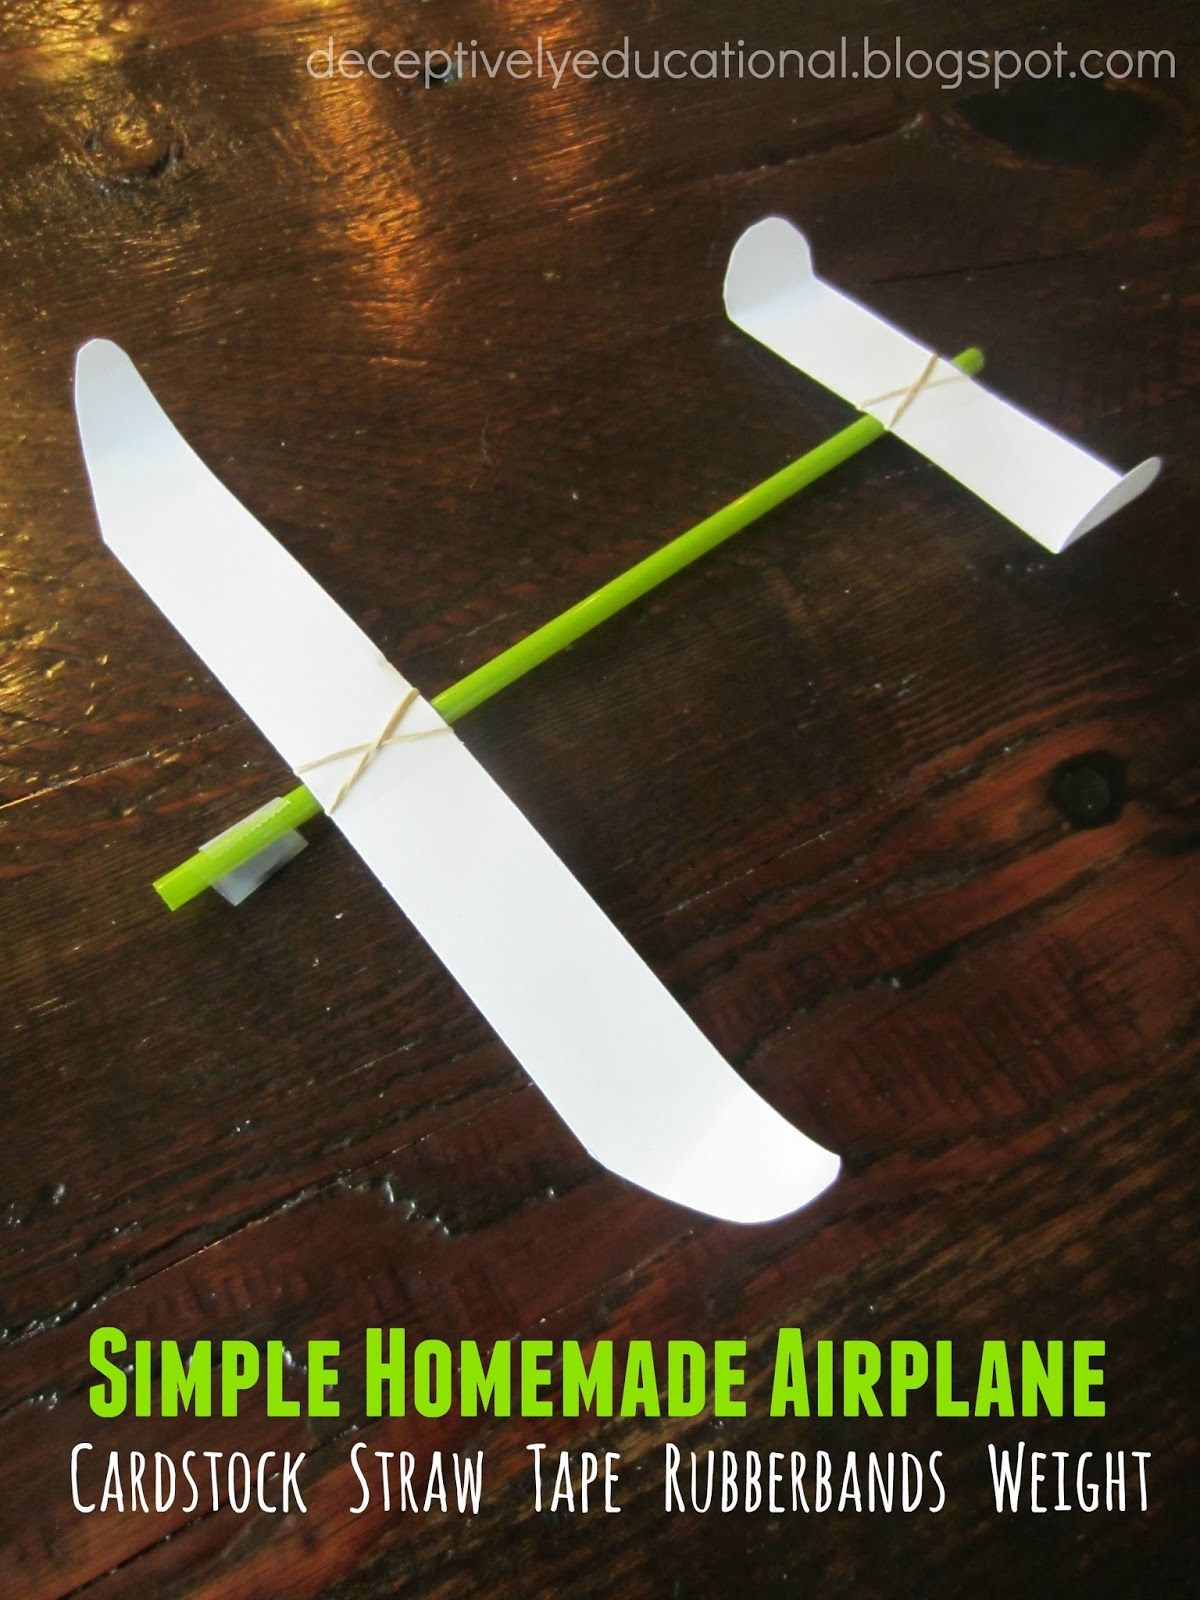 Relentlessly Fun, Deceptively Educational: Simple Homemade Airplane #summerfunideasforkids